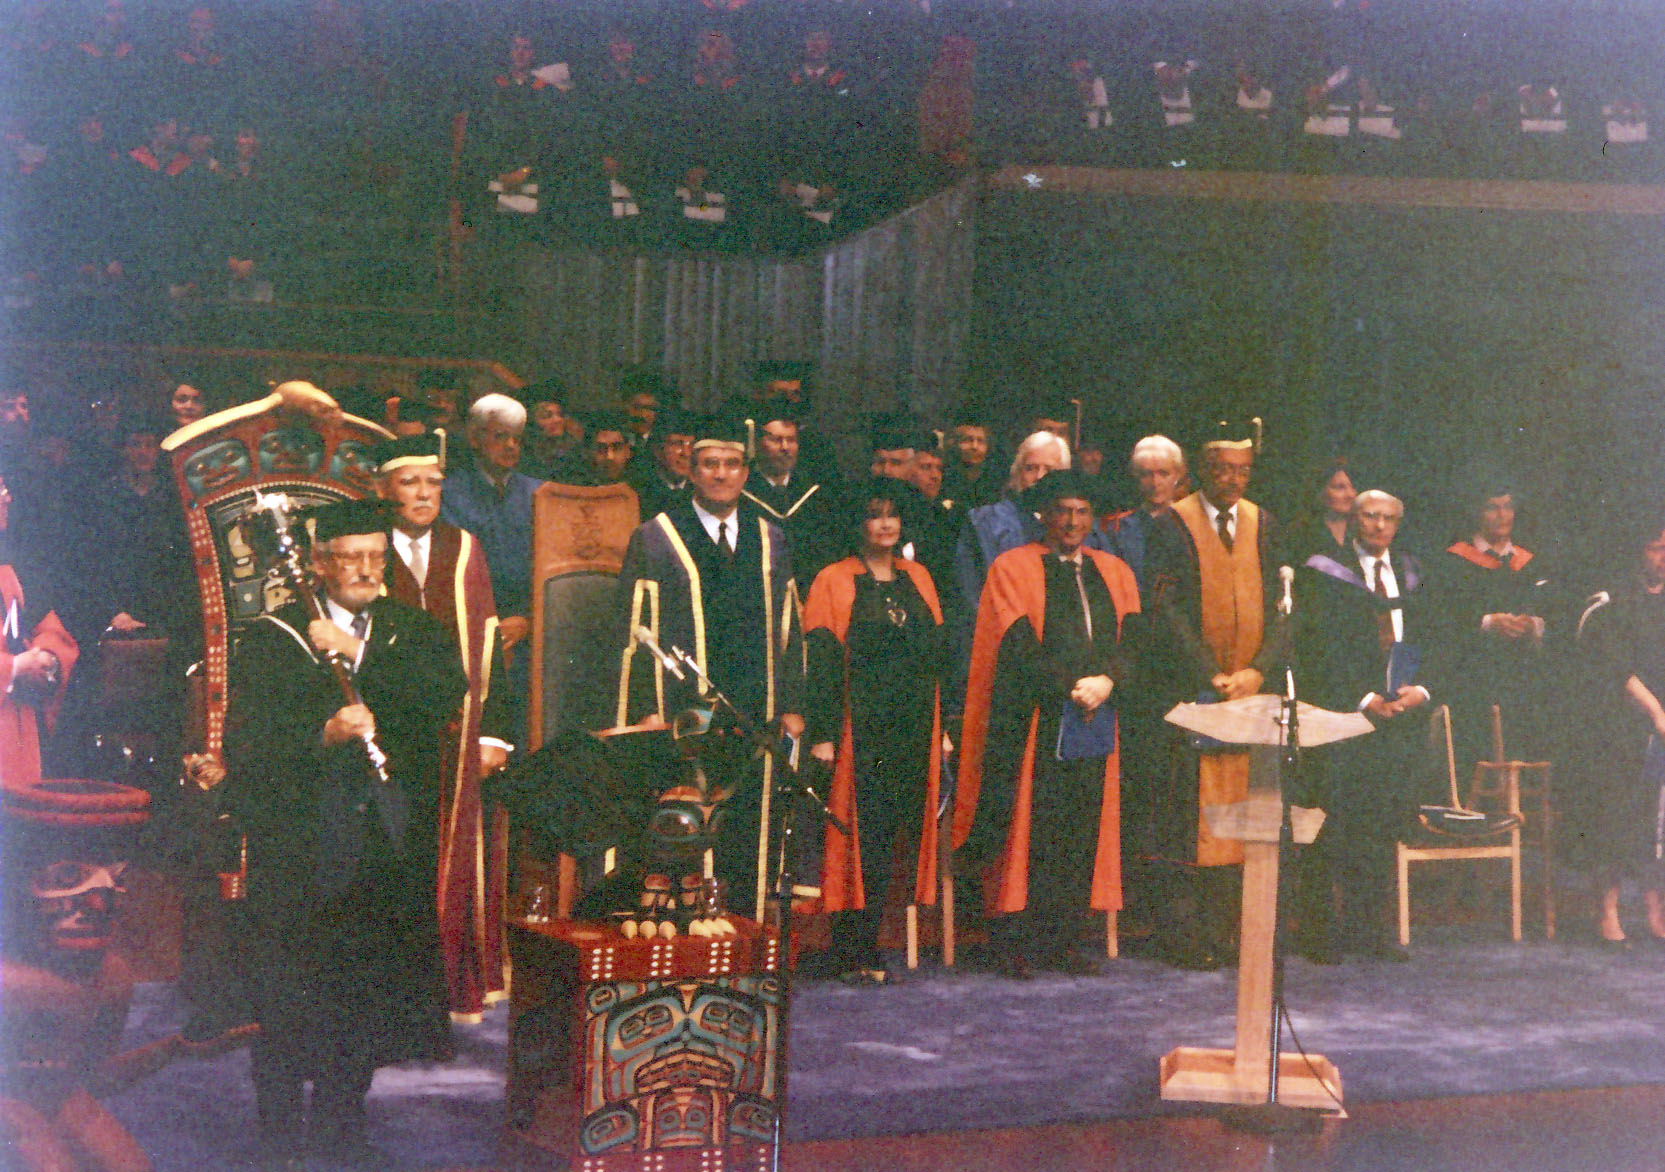 Pepe receiving honorary doctorate at University of Victoria, B.C.